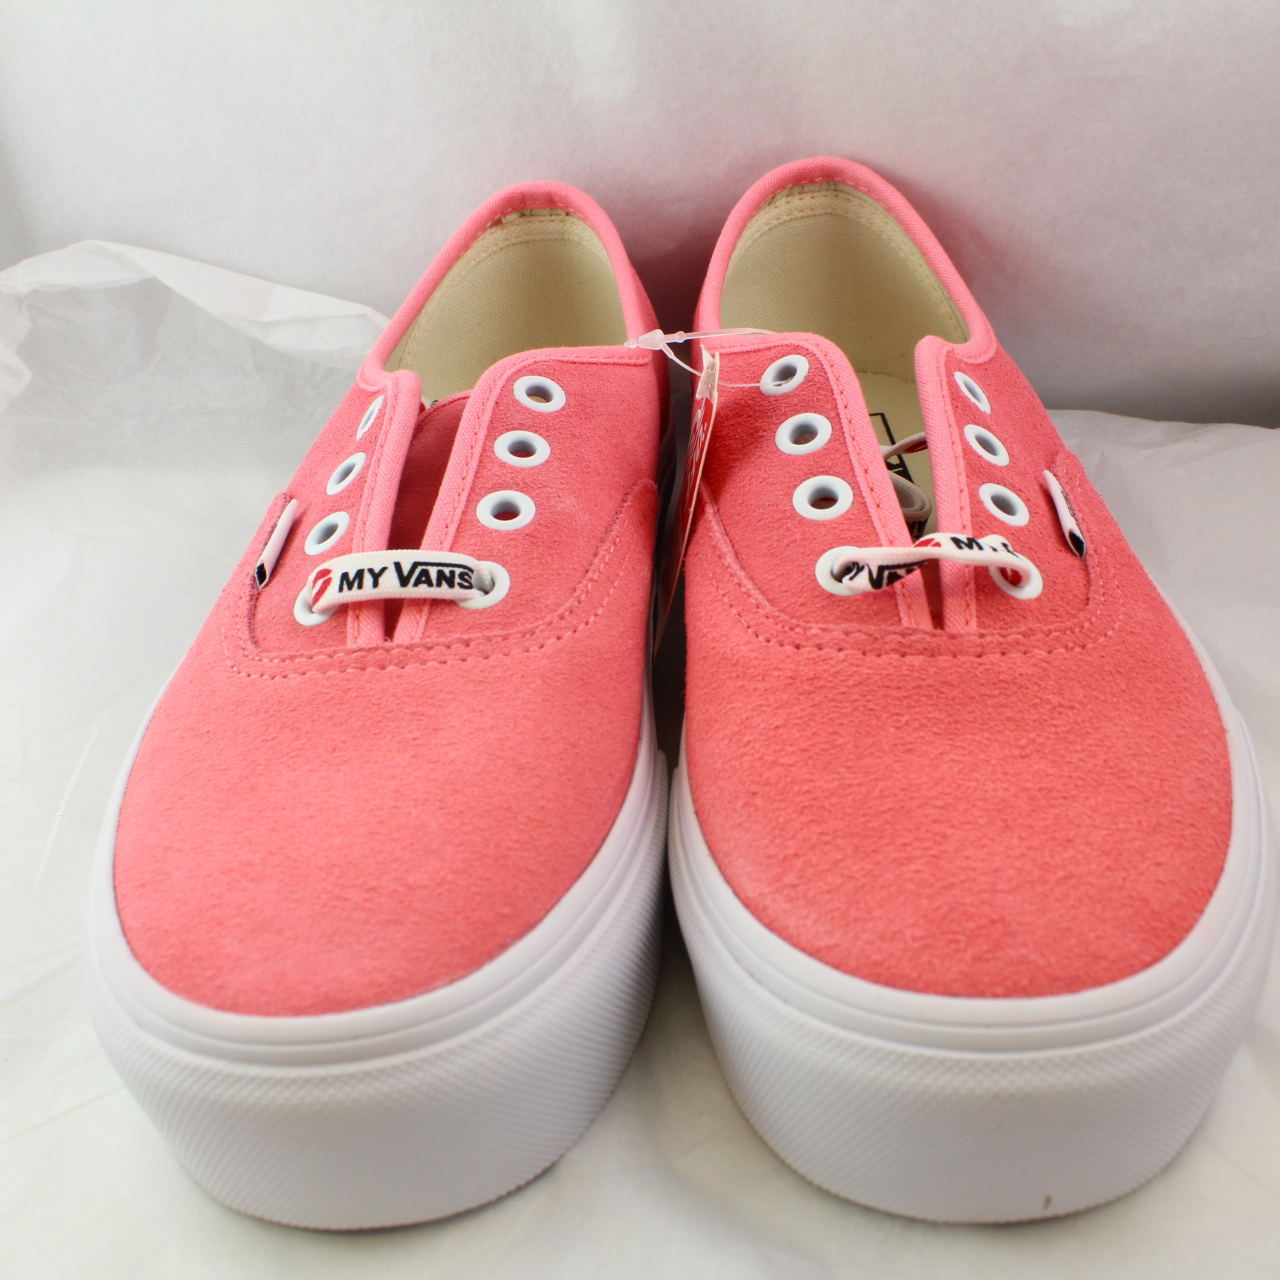 2258c6771bca Sentinel Womens Vans Pink Suede Lace-up Trainers Size UK 5  Ex-Display